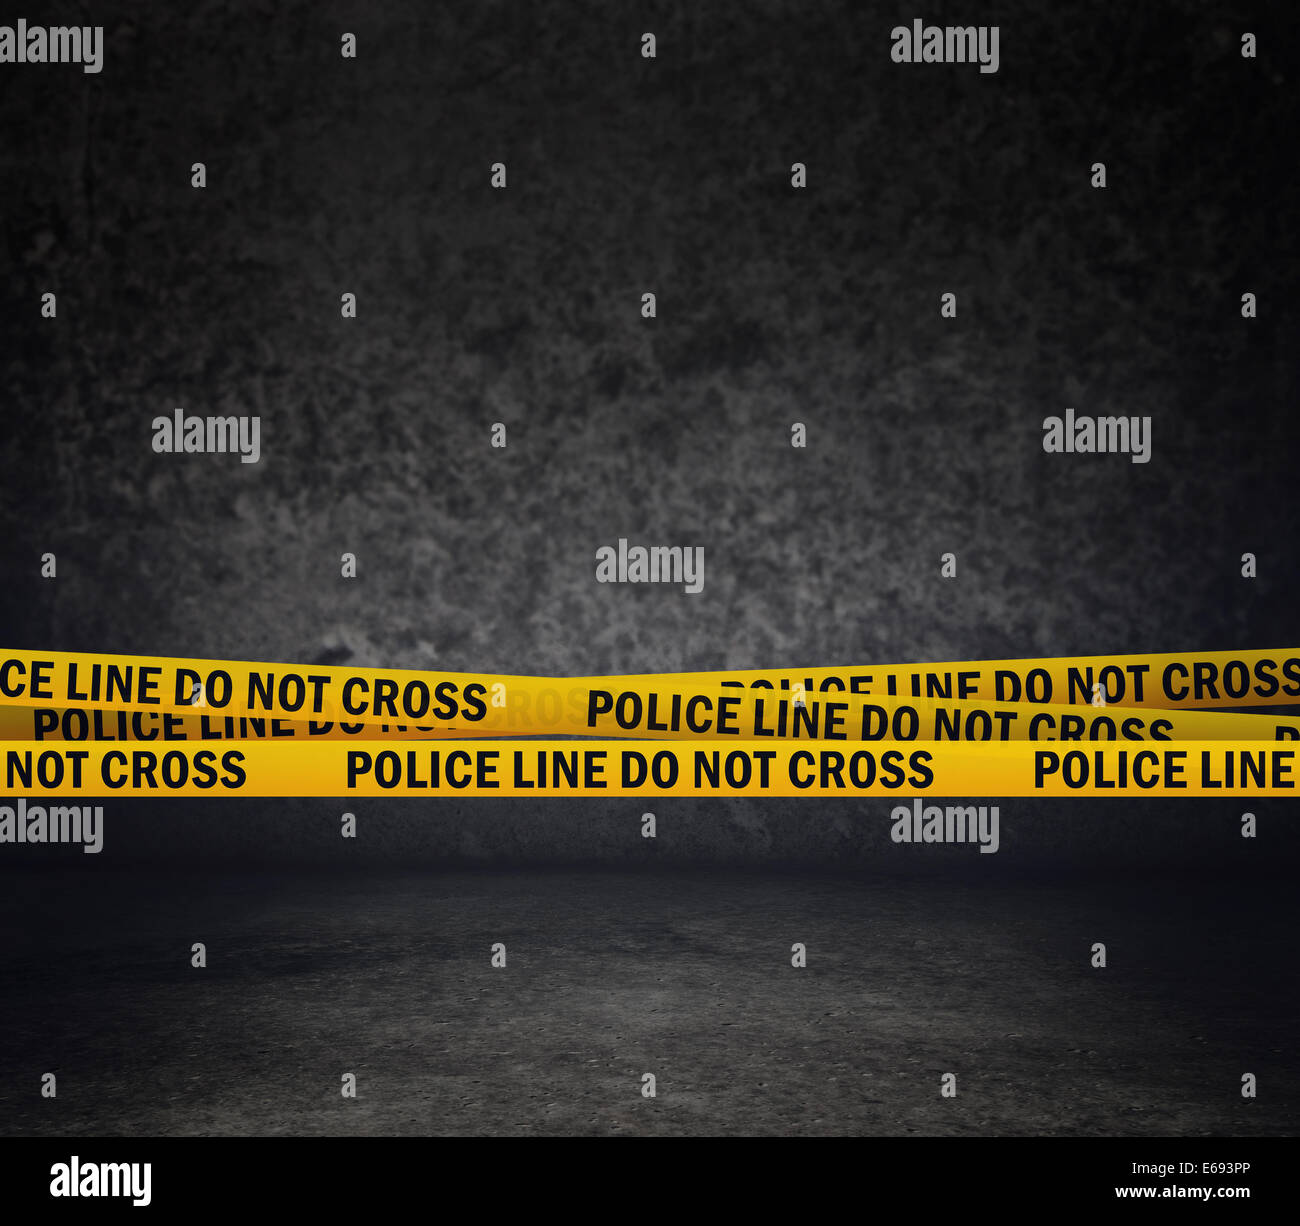 Police Line Do Not Cross Yellow Headband Tape. Murder Scene Police Ribbon. - Stock Image